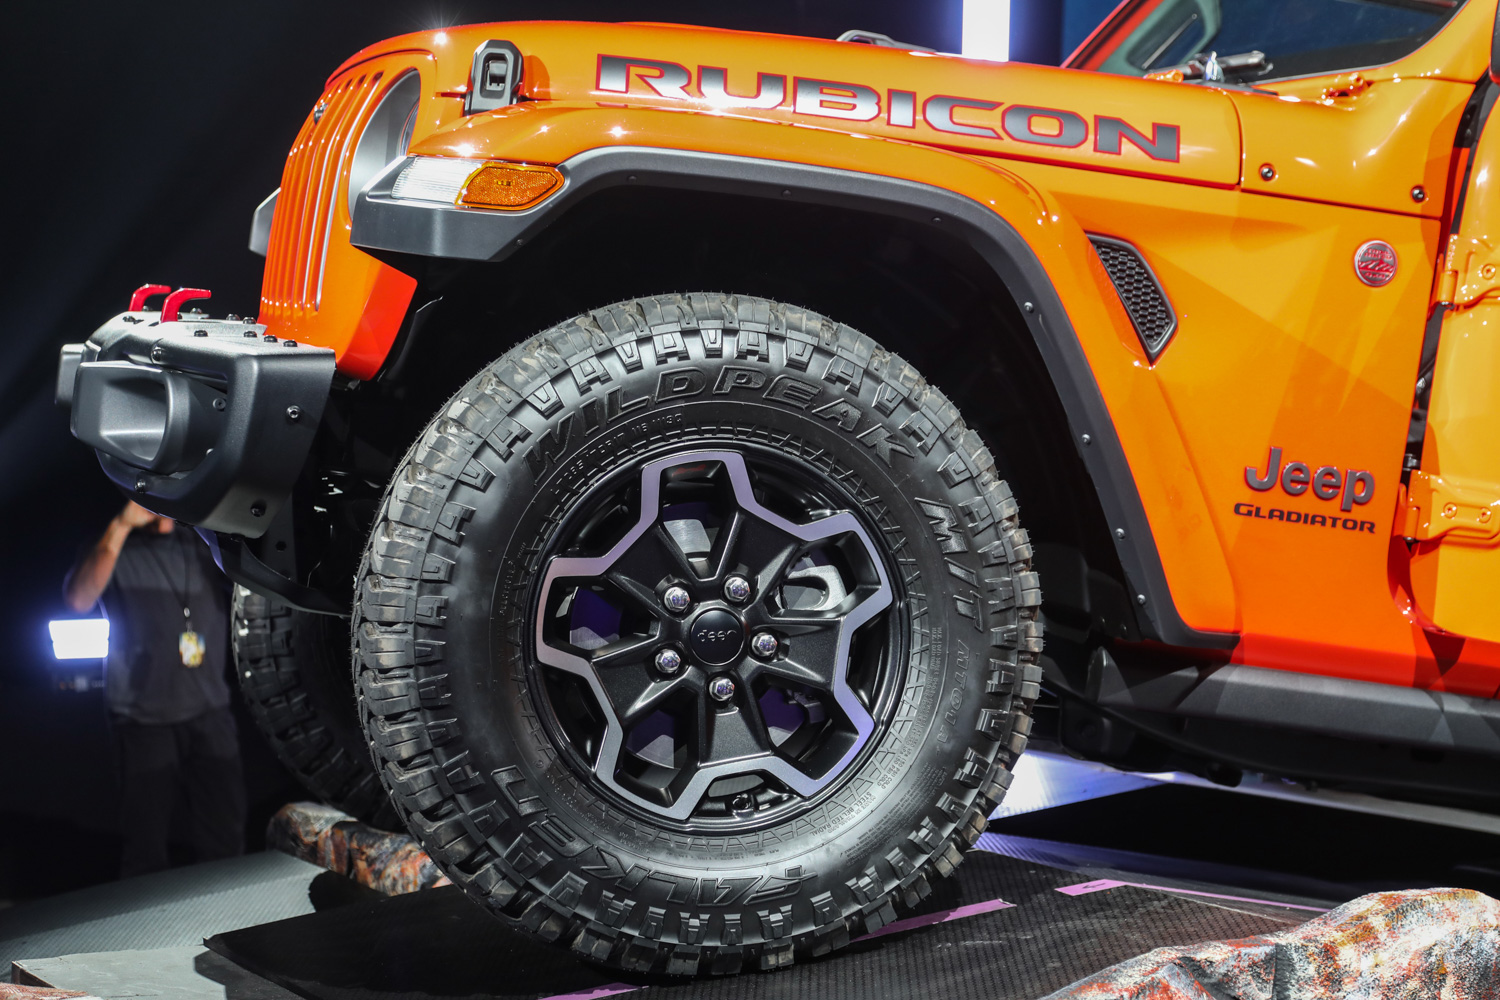 2020 Jeep Gladiator front wheel tire